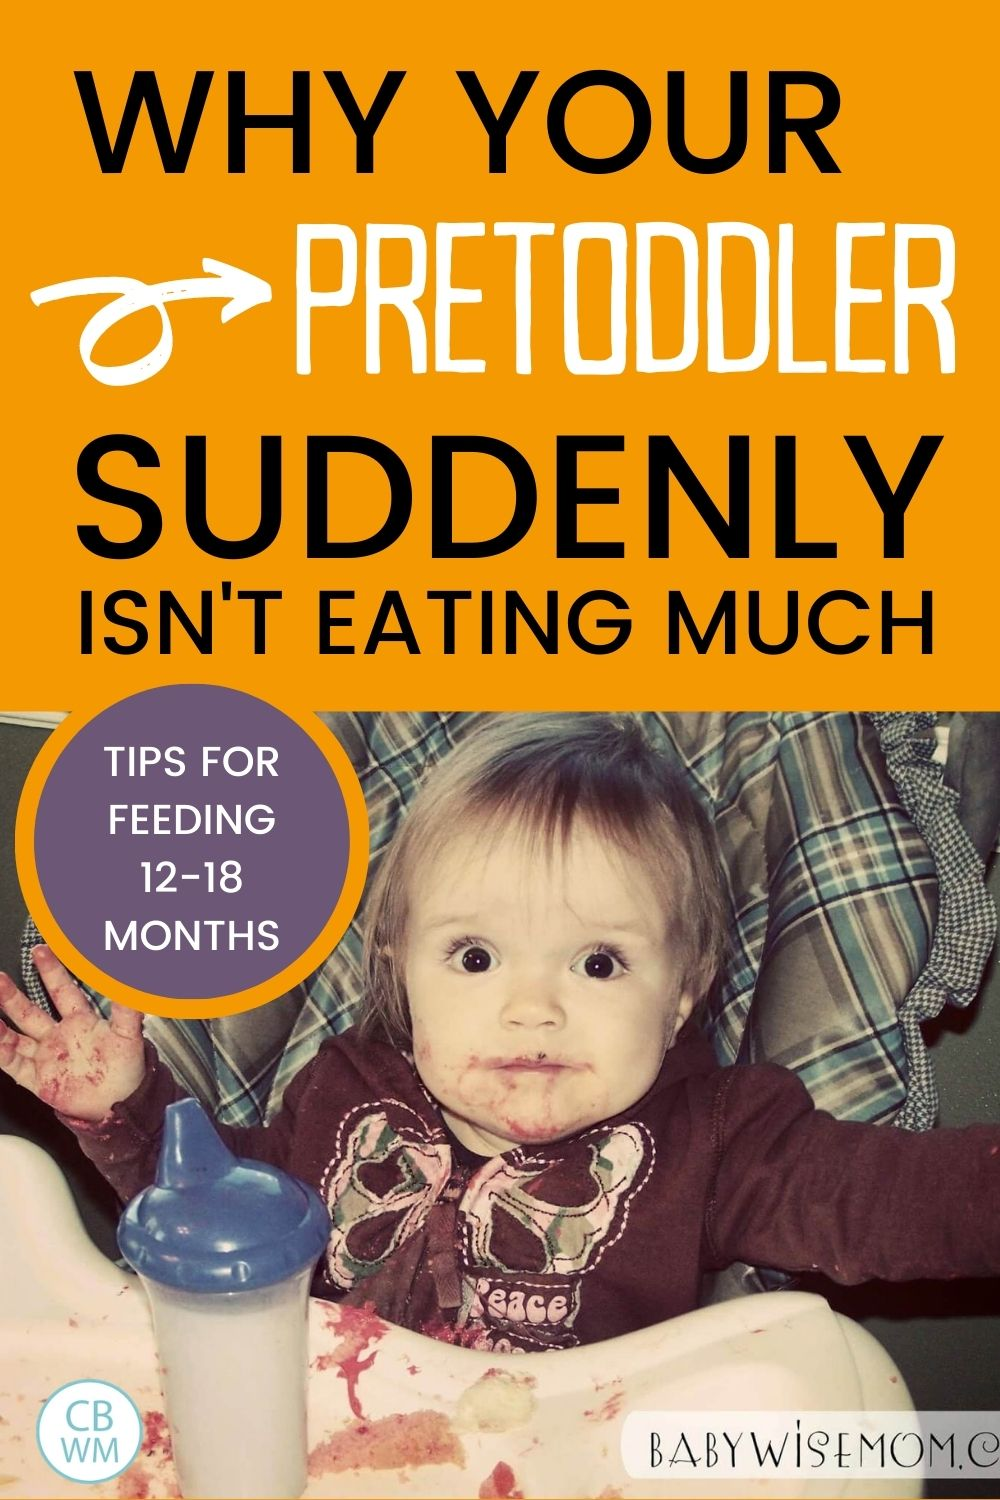 Pretoddler not eating much